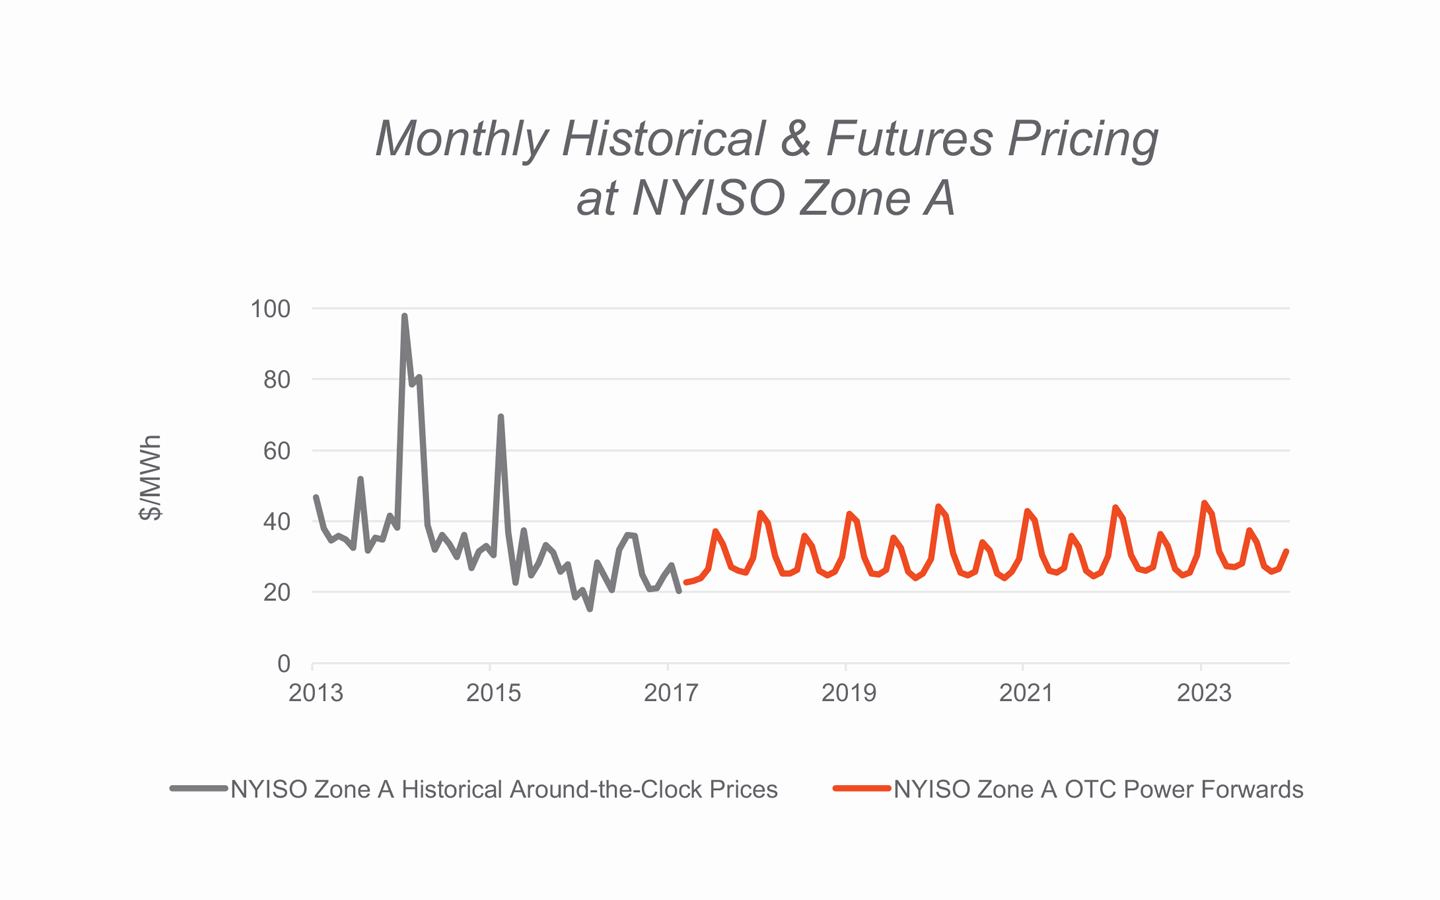 Monthly Historical & Futures Pricing at NYISO Zone A